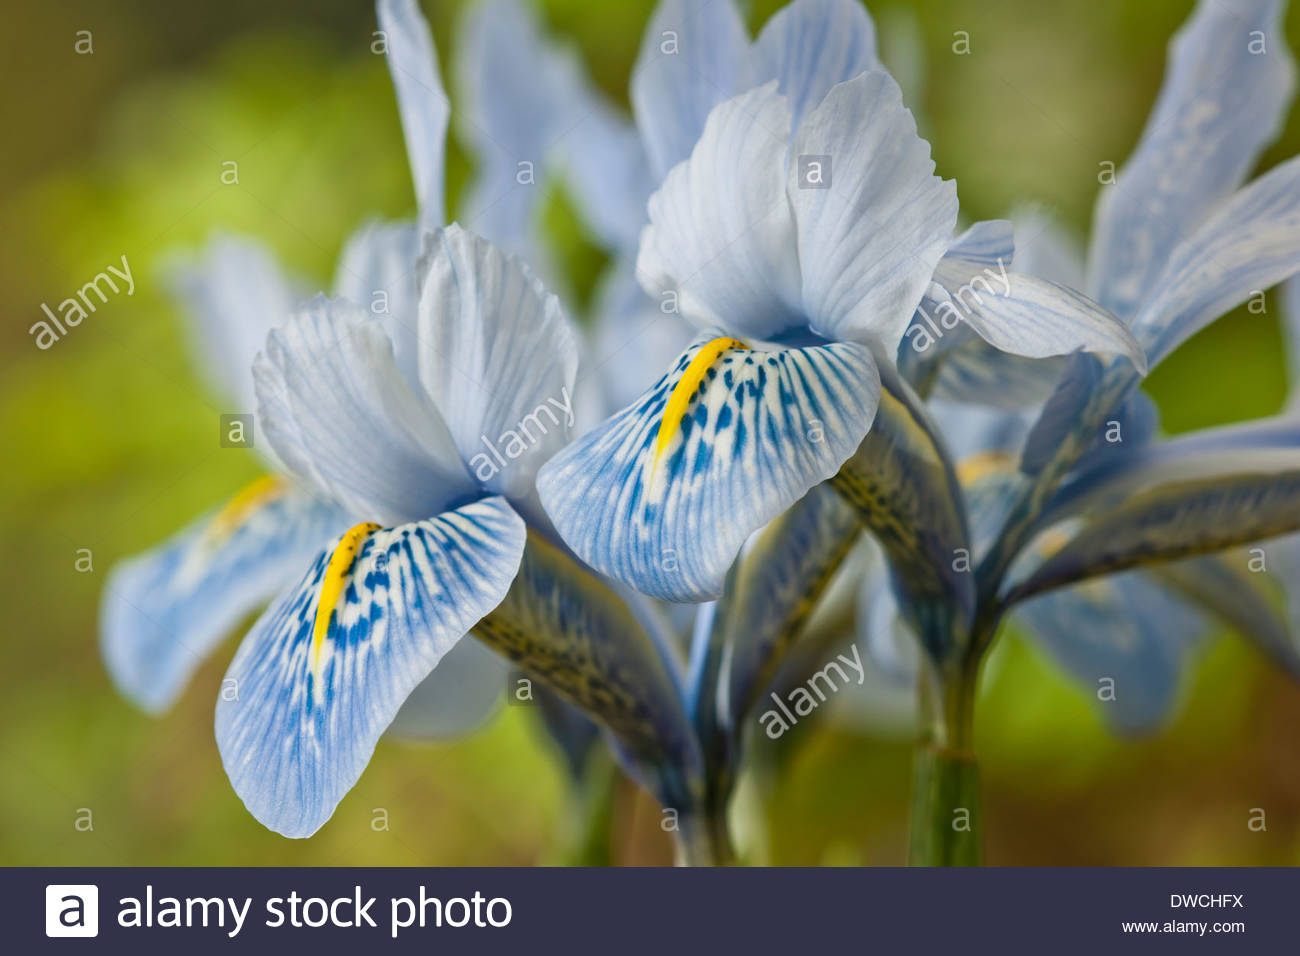 Early spring blue flowers iris stock photos early spring blue iris histrioides sheila ann germaney early flower spring bulbs february pale blue flowers blooms blossoms garden mightylinksfo